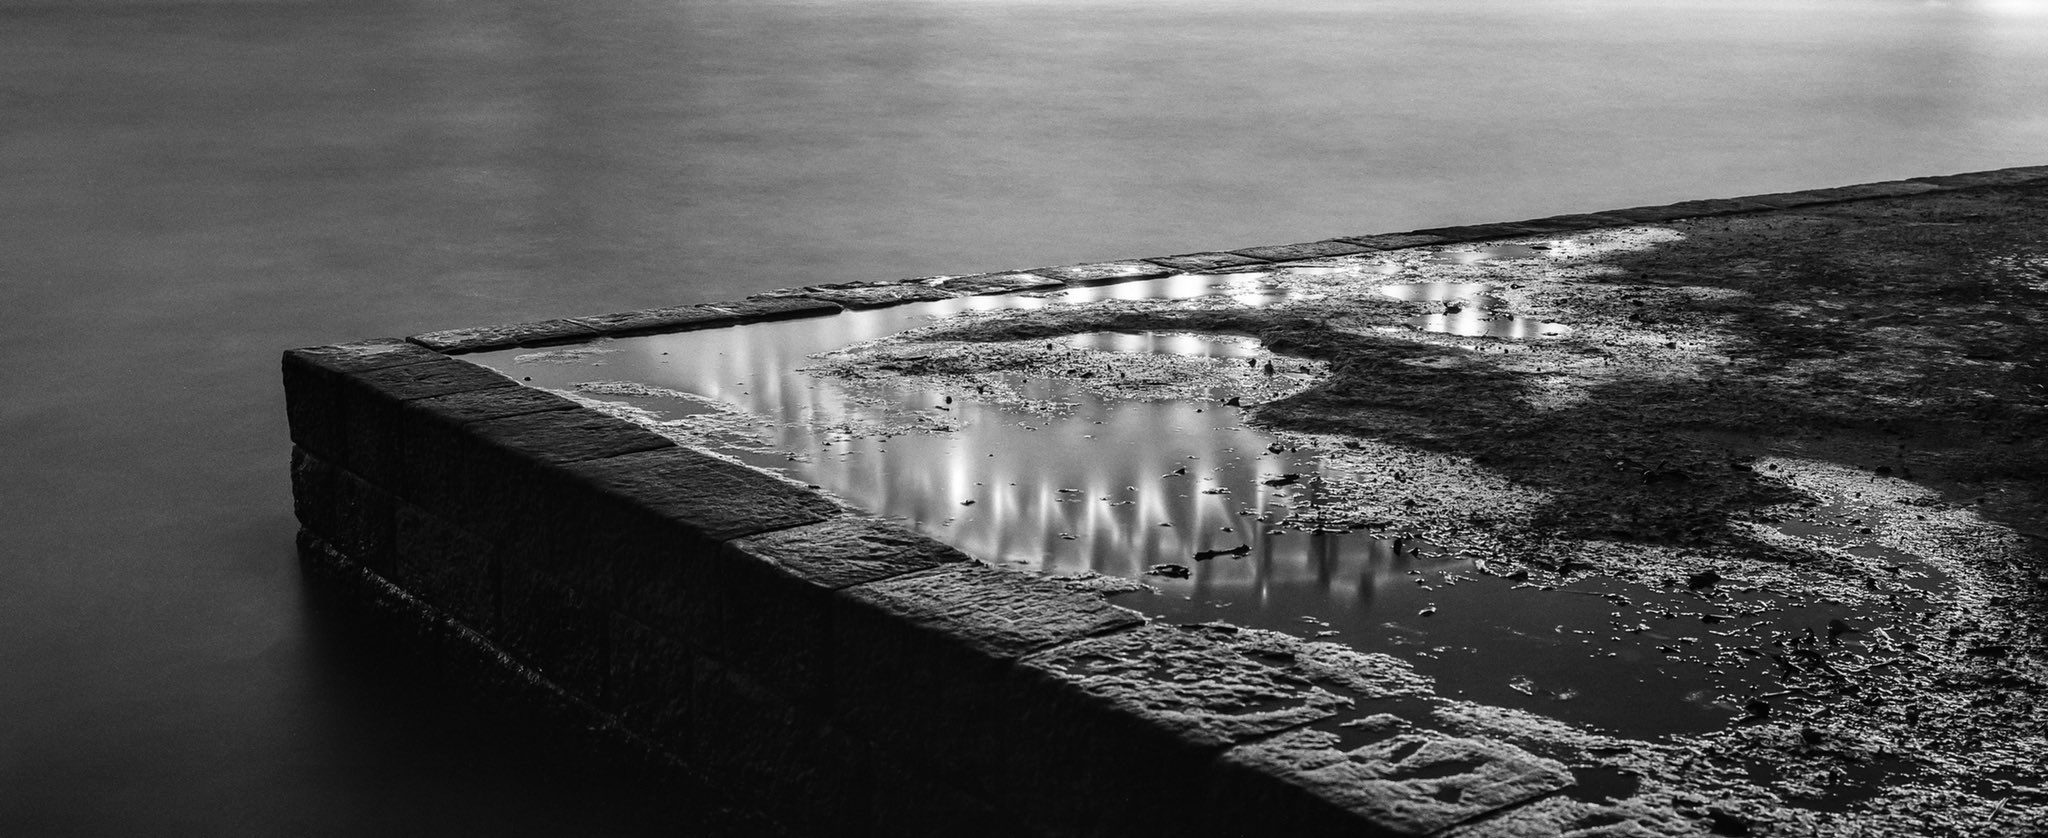 @billthoo Replying to @ILFORDPhoto Ephemeral reflections on Sydney. May 2018. #FP4 (135 with adapter) in a Pentax 6x7. #ilfordphoto #fridayfavourites #nighttime #analognights #shootfilmbenice #believeinfilm #filmphotography #ilovesydney